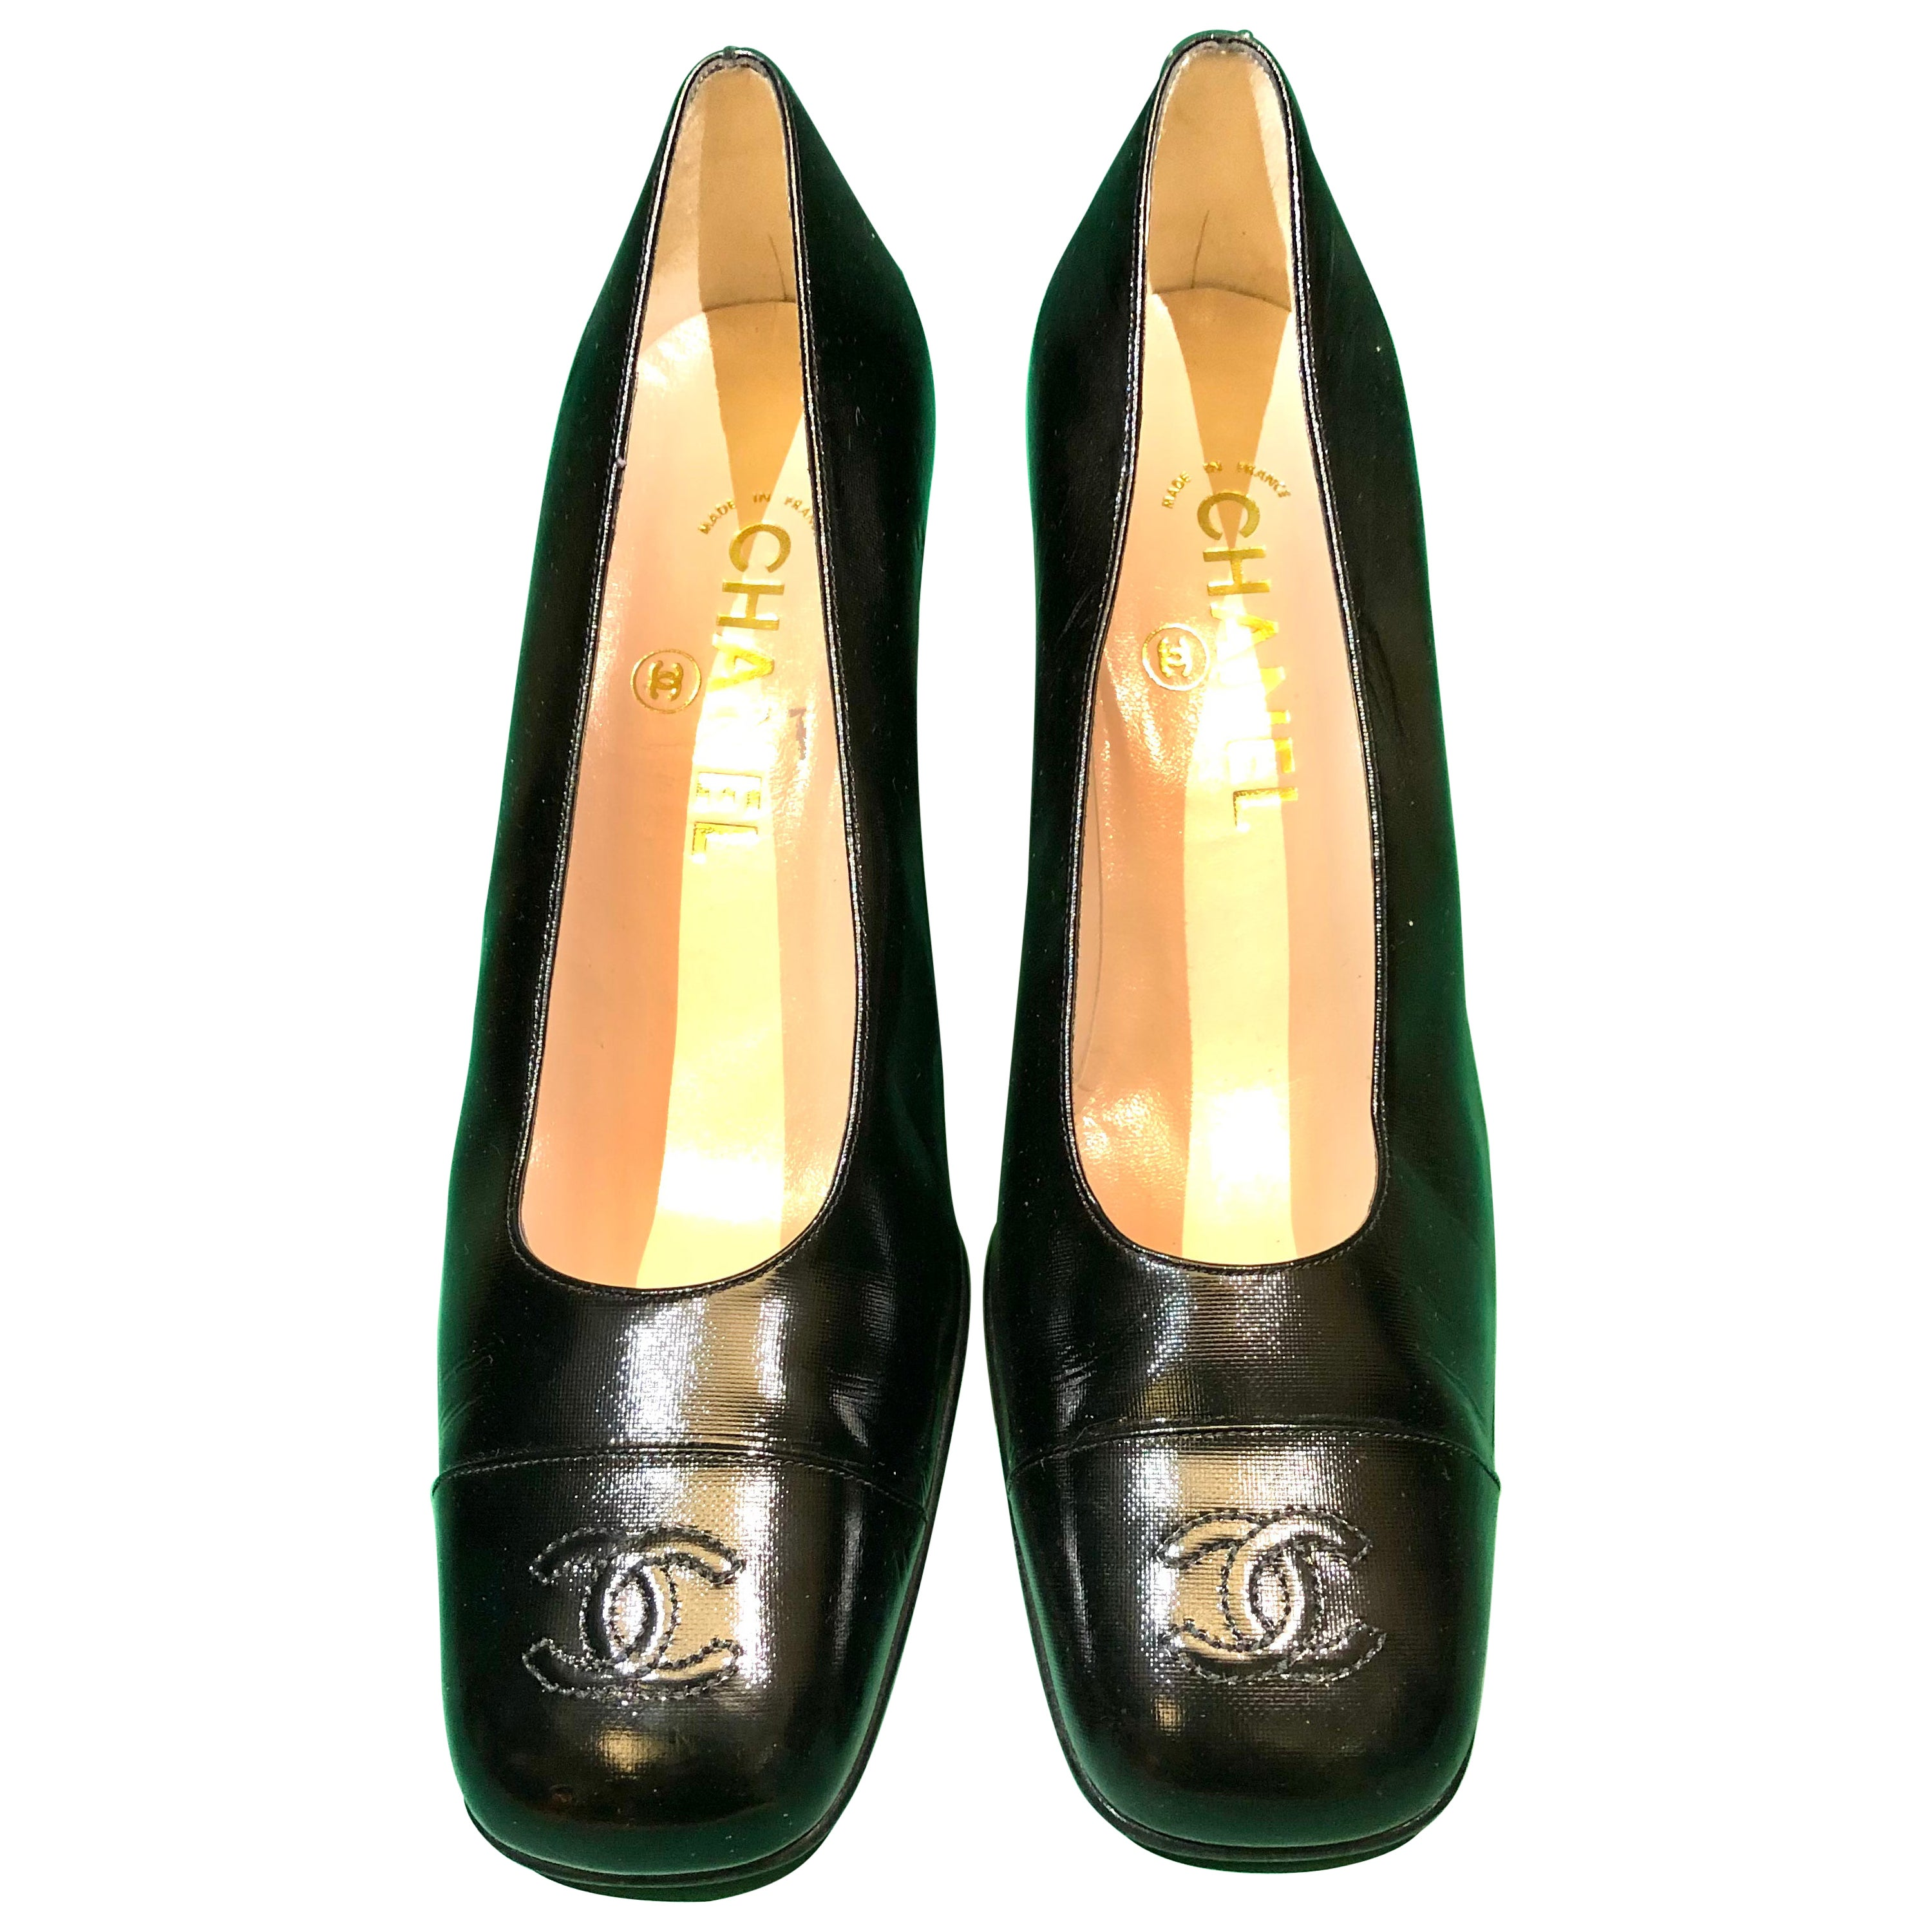 Vintage 90d Chanel Patent Leather Square Toe Mary Jane Heels Pumps